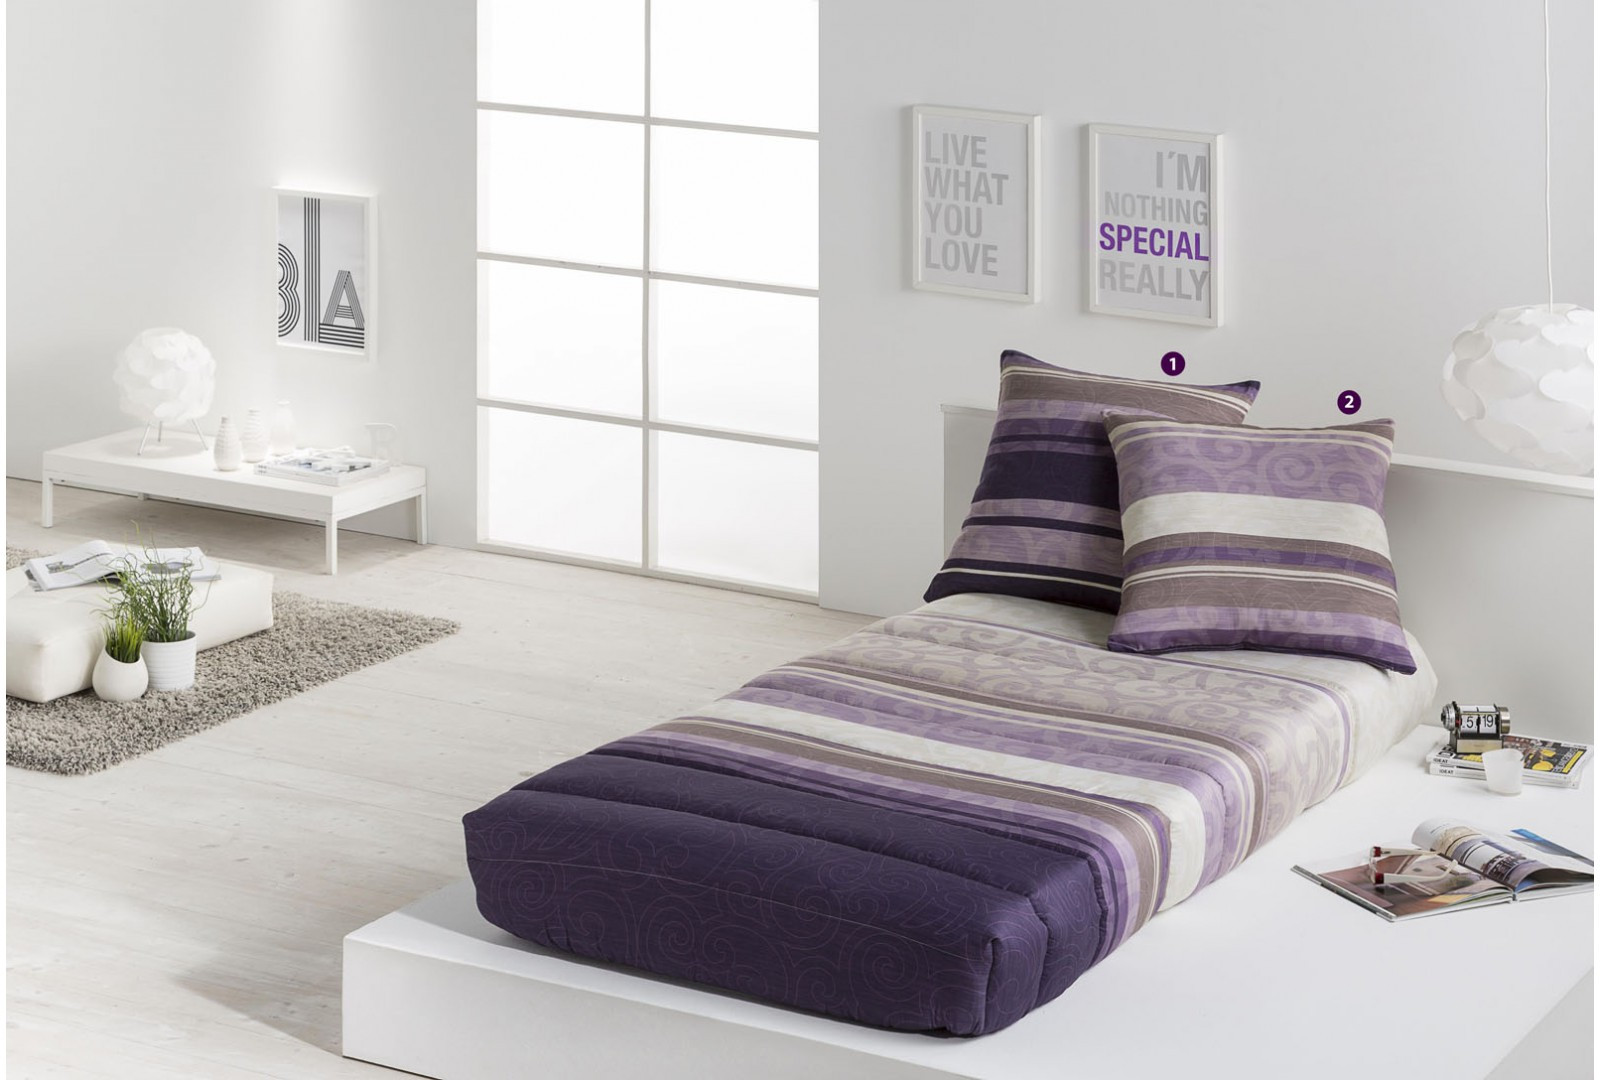 Edredon Ajustable Cama 90 Arriba EdredÓn Ajustable Clio Descatalogado Decorajoven Of Edredon Ajustable Cama 90 Contemporáneo Edredón Ajustable Patch Reig Marti